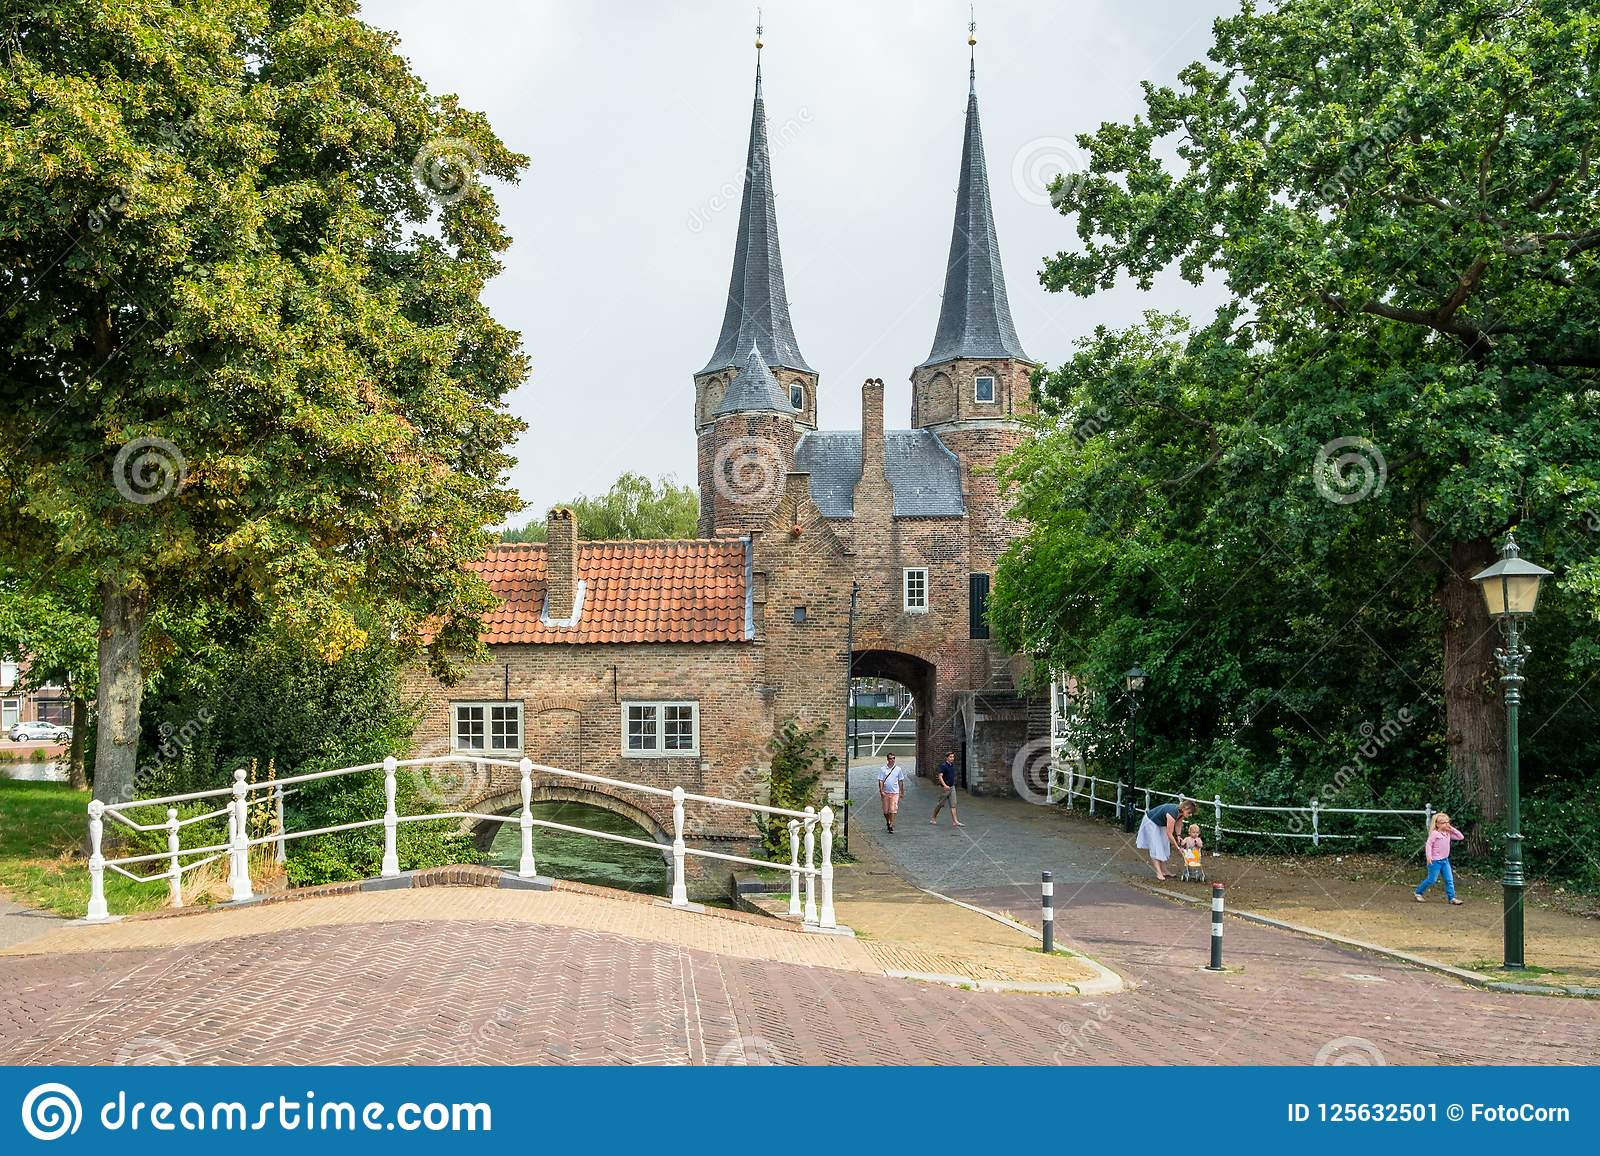 A family with young children visit the Eastern Gate an old city gate of Delft, the Netherlands.